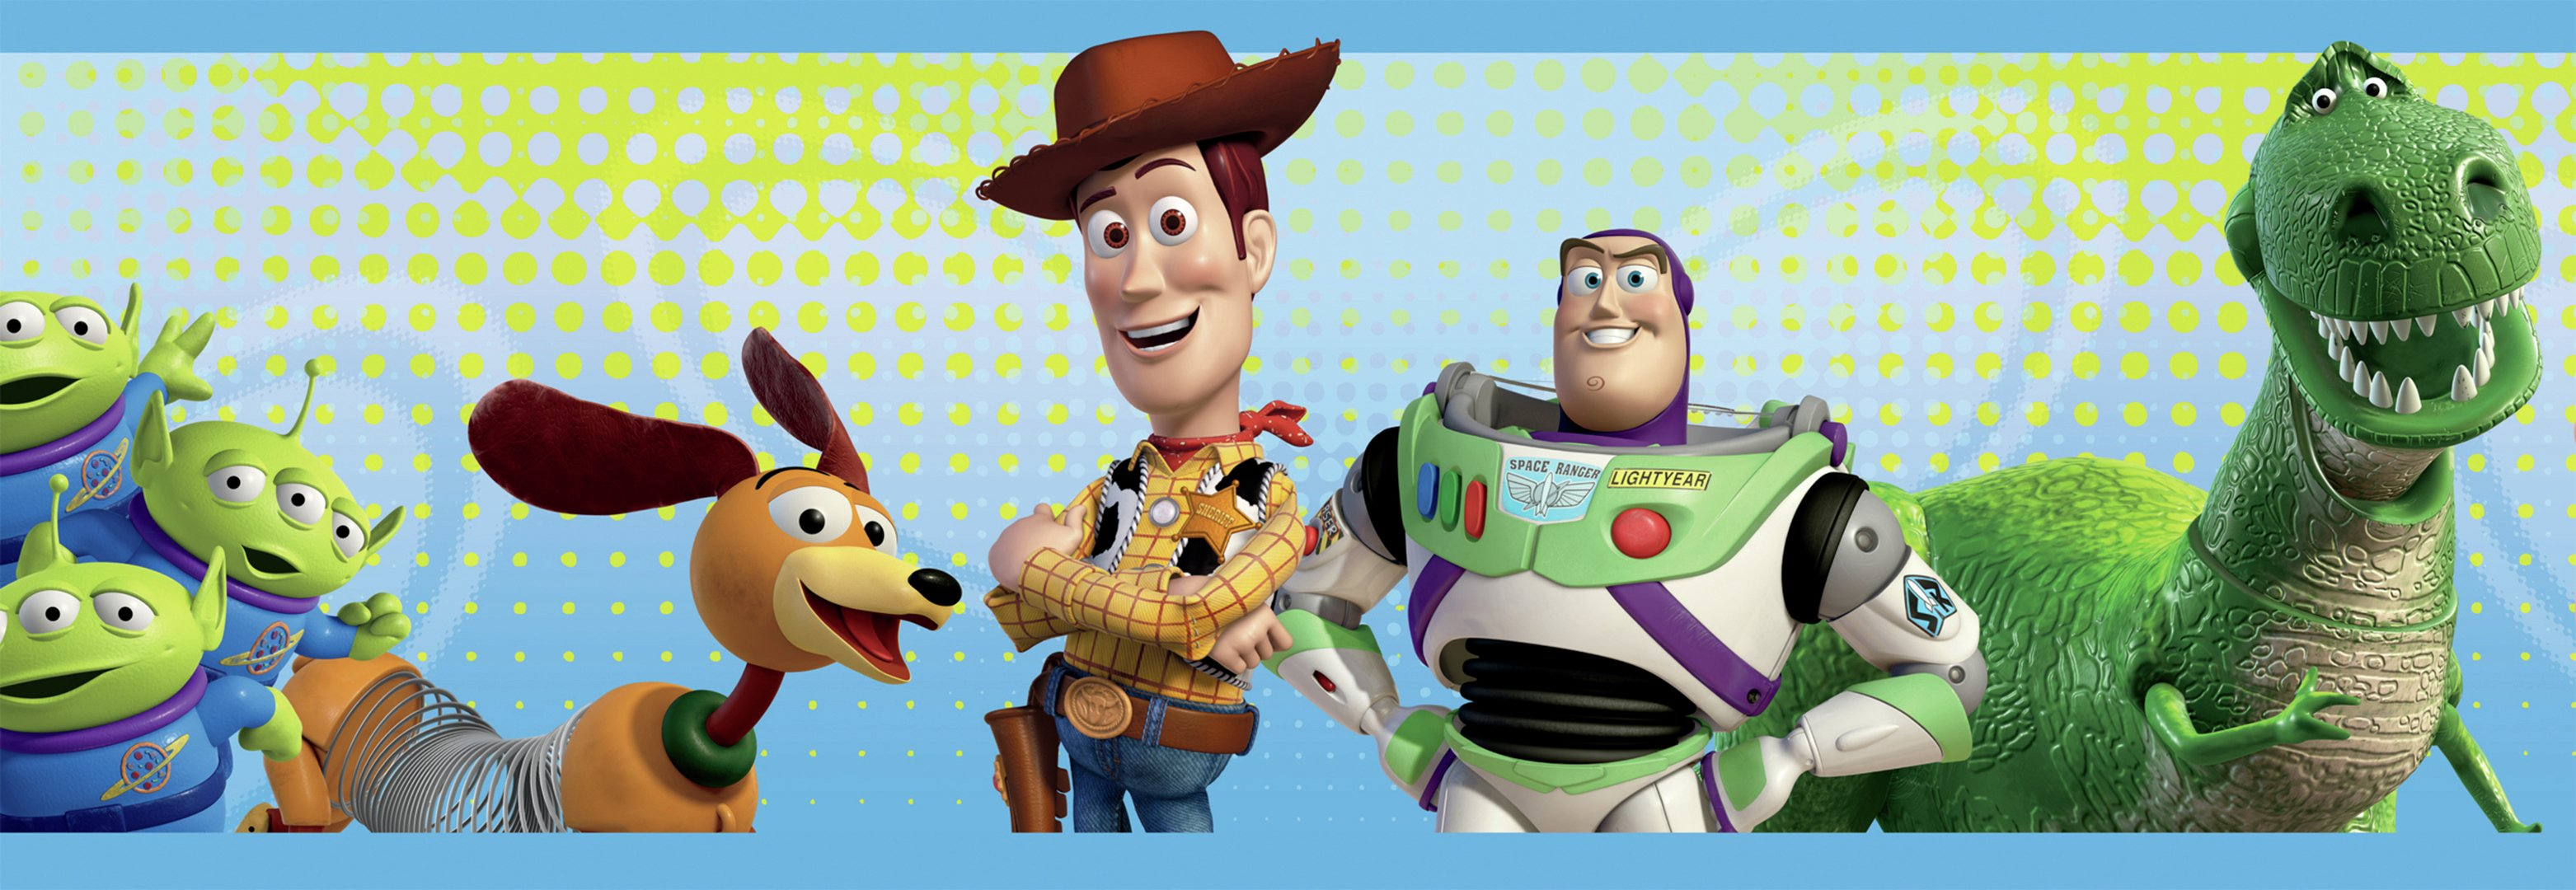 disney toy story 3 border wallpaper sample.